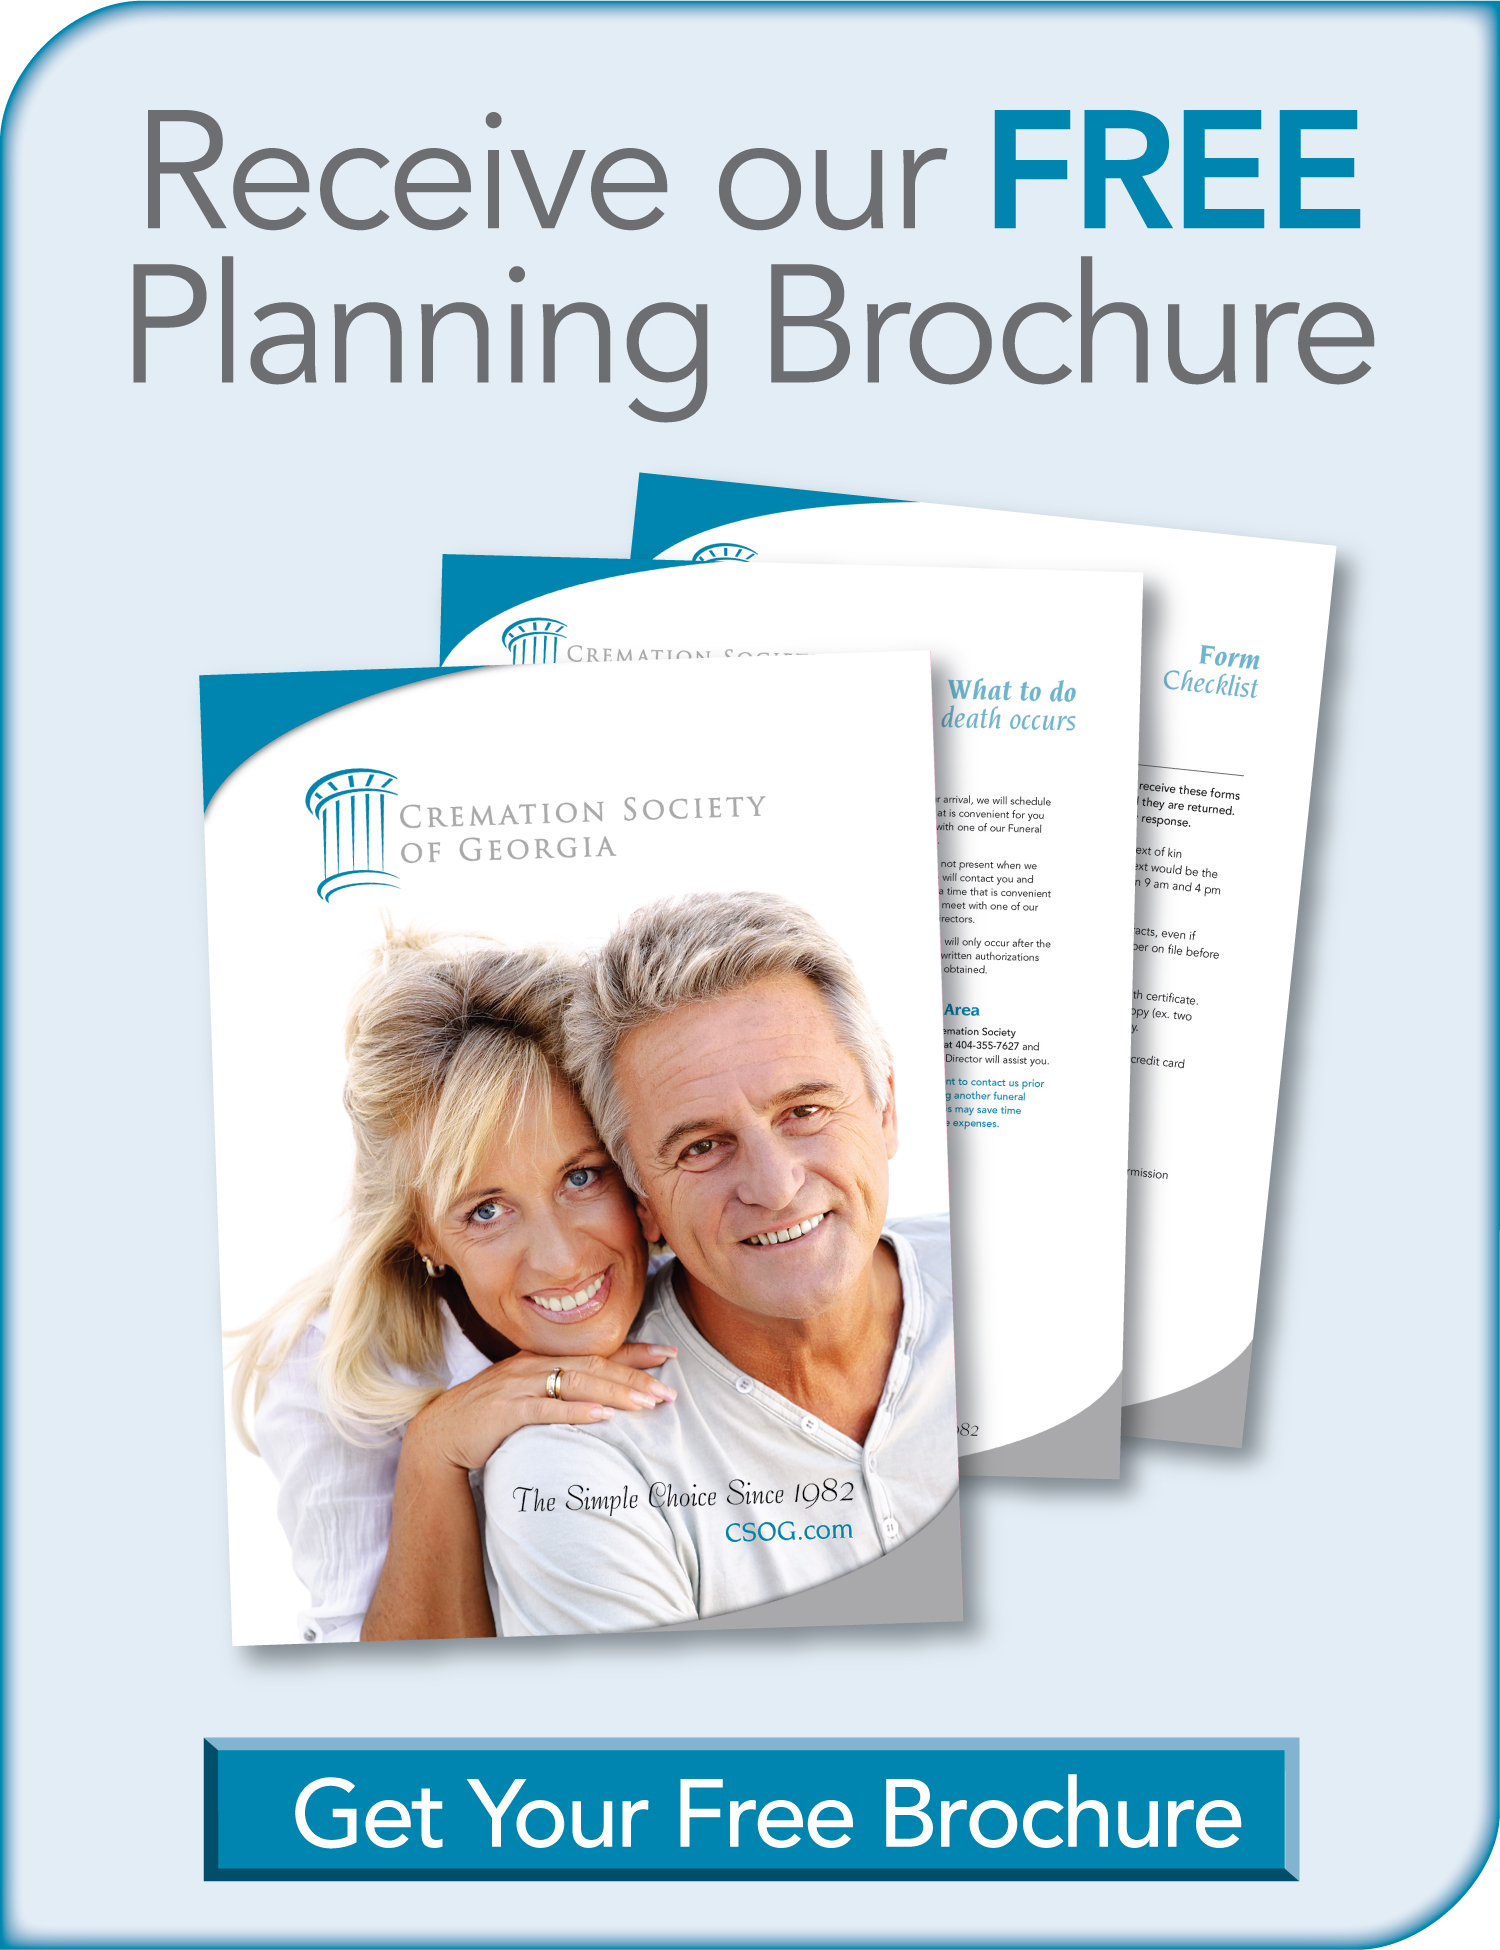 Get a FREE Planning Kit to help you with planning the cremation process